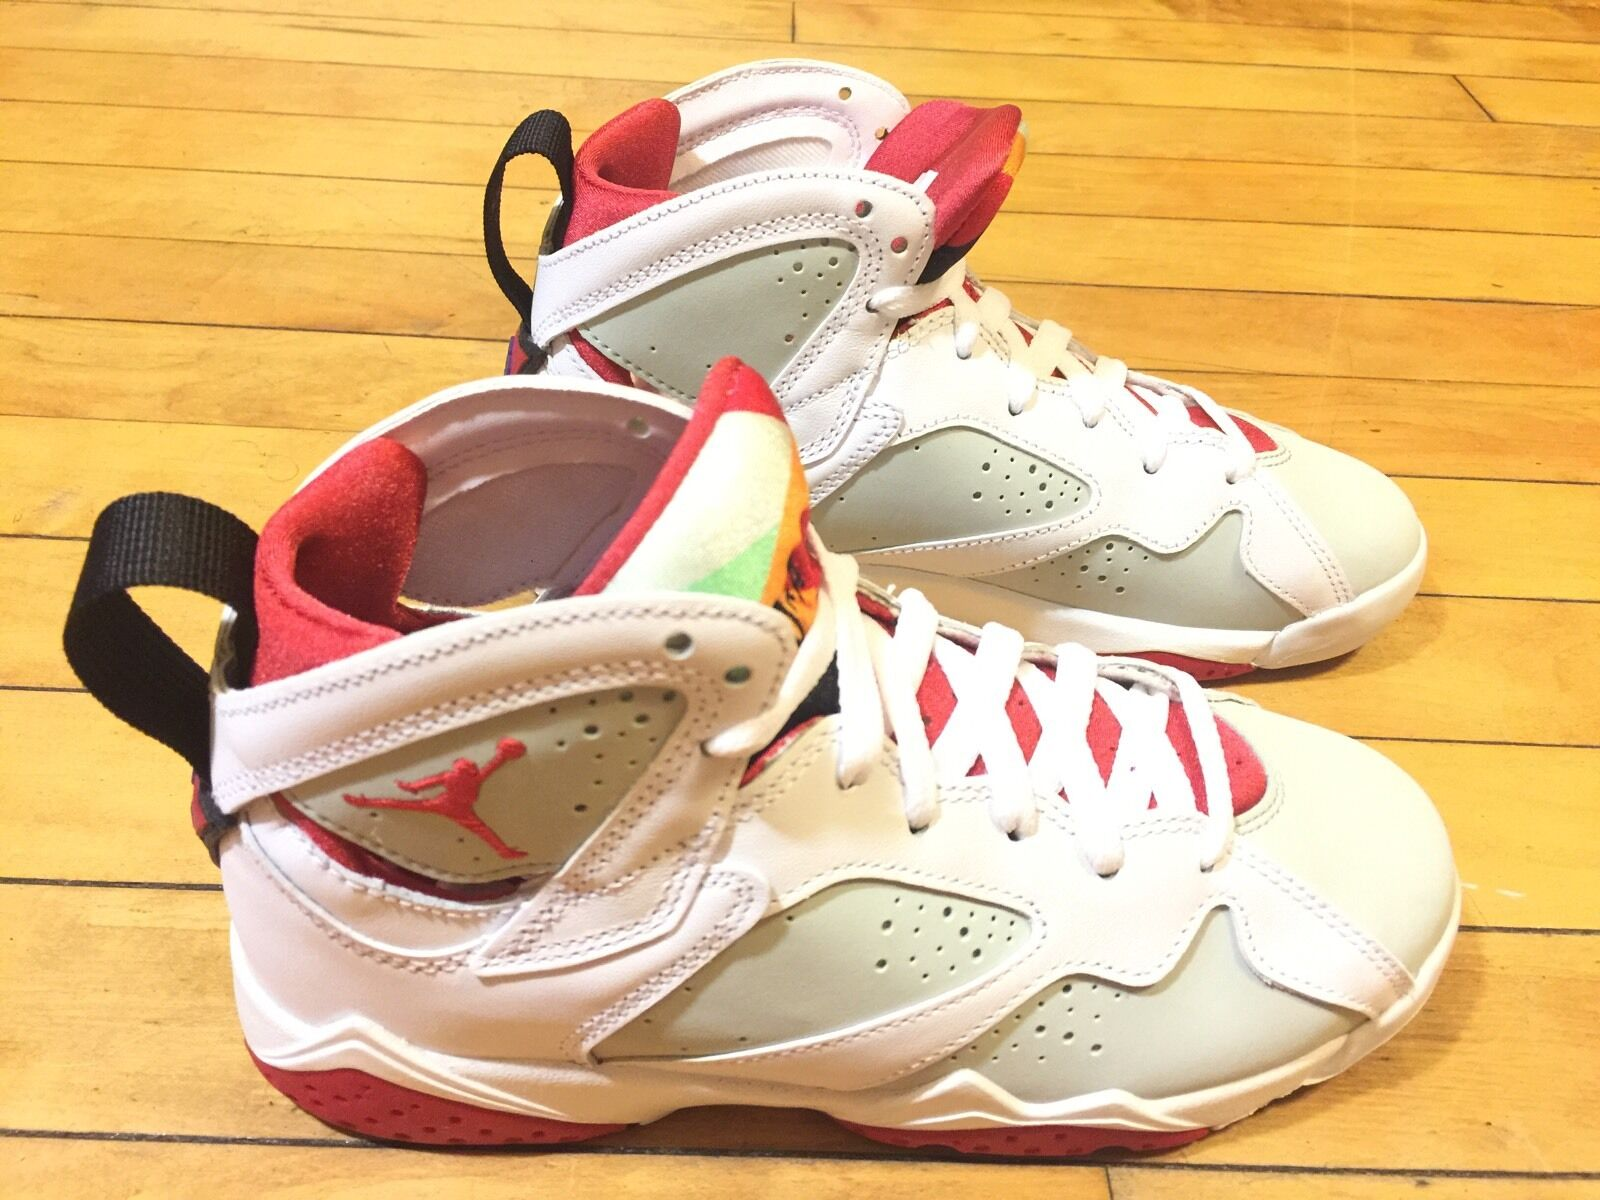 NIKE AIR JORDAN 7 RETRO 304774-125 Price reduction The most popular shoes for men and women